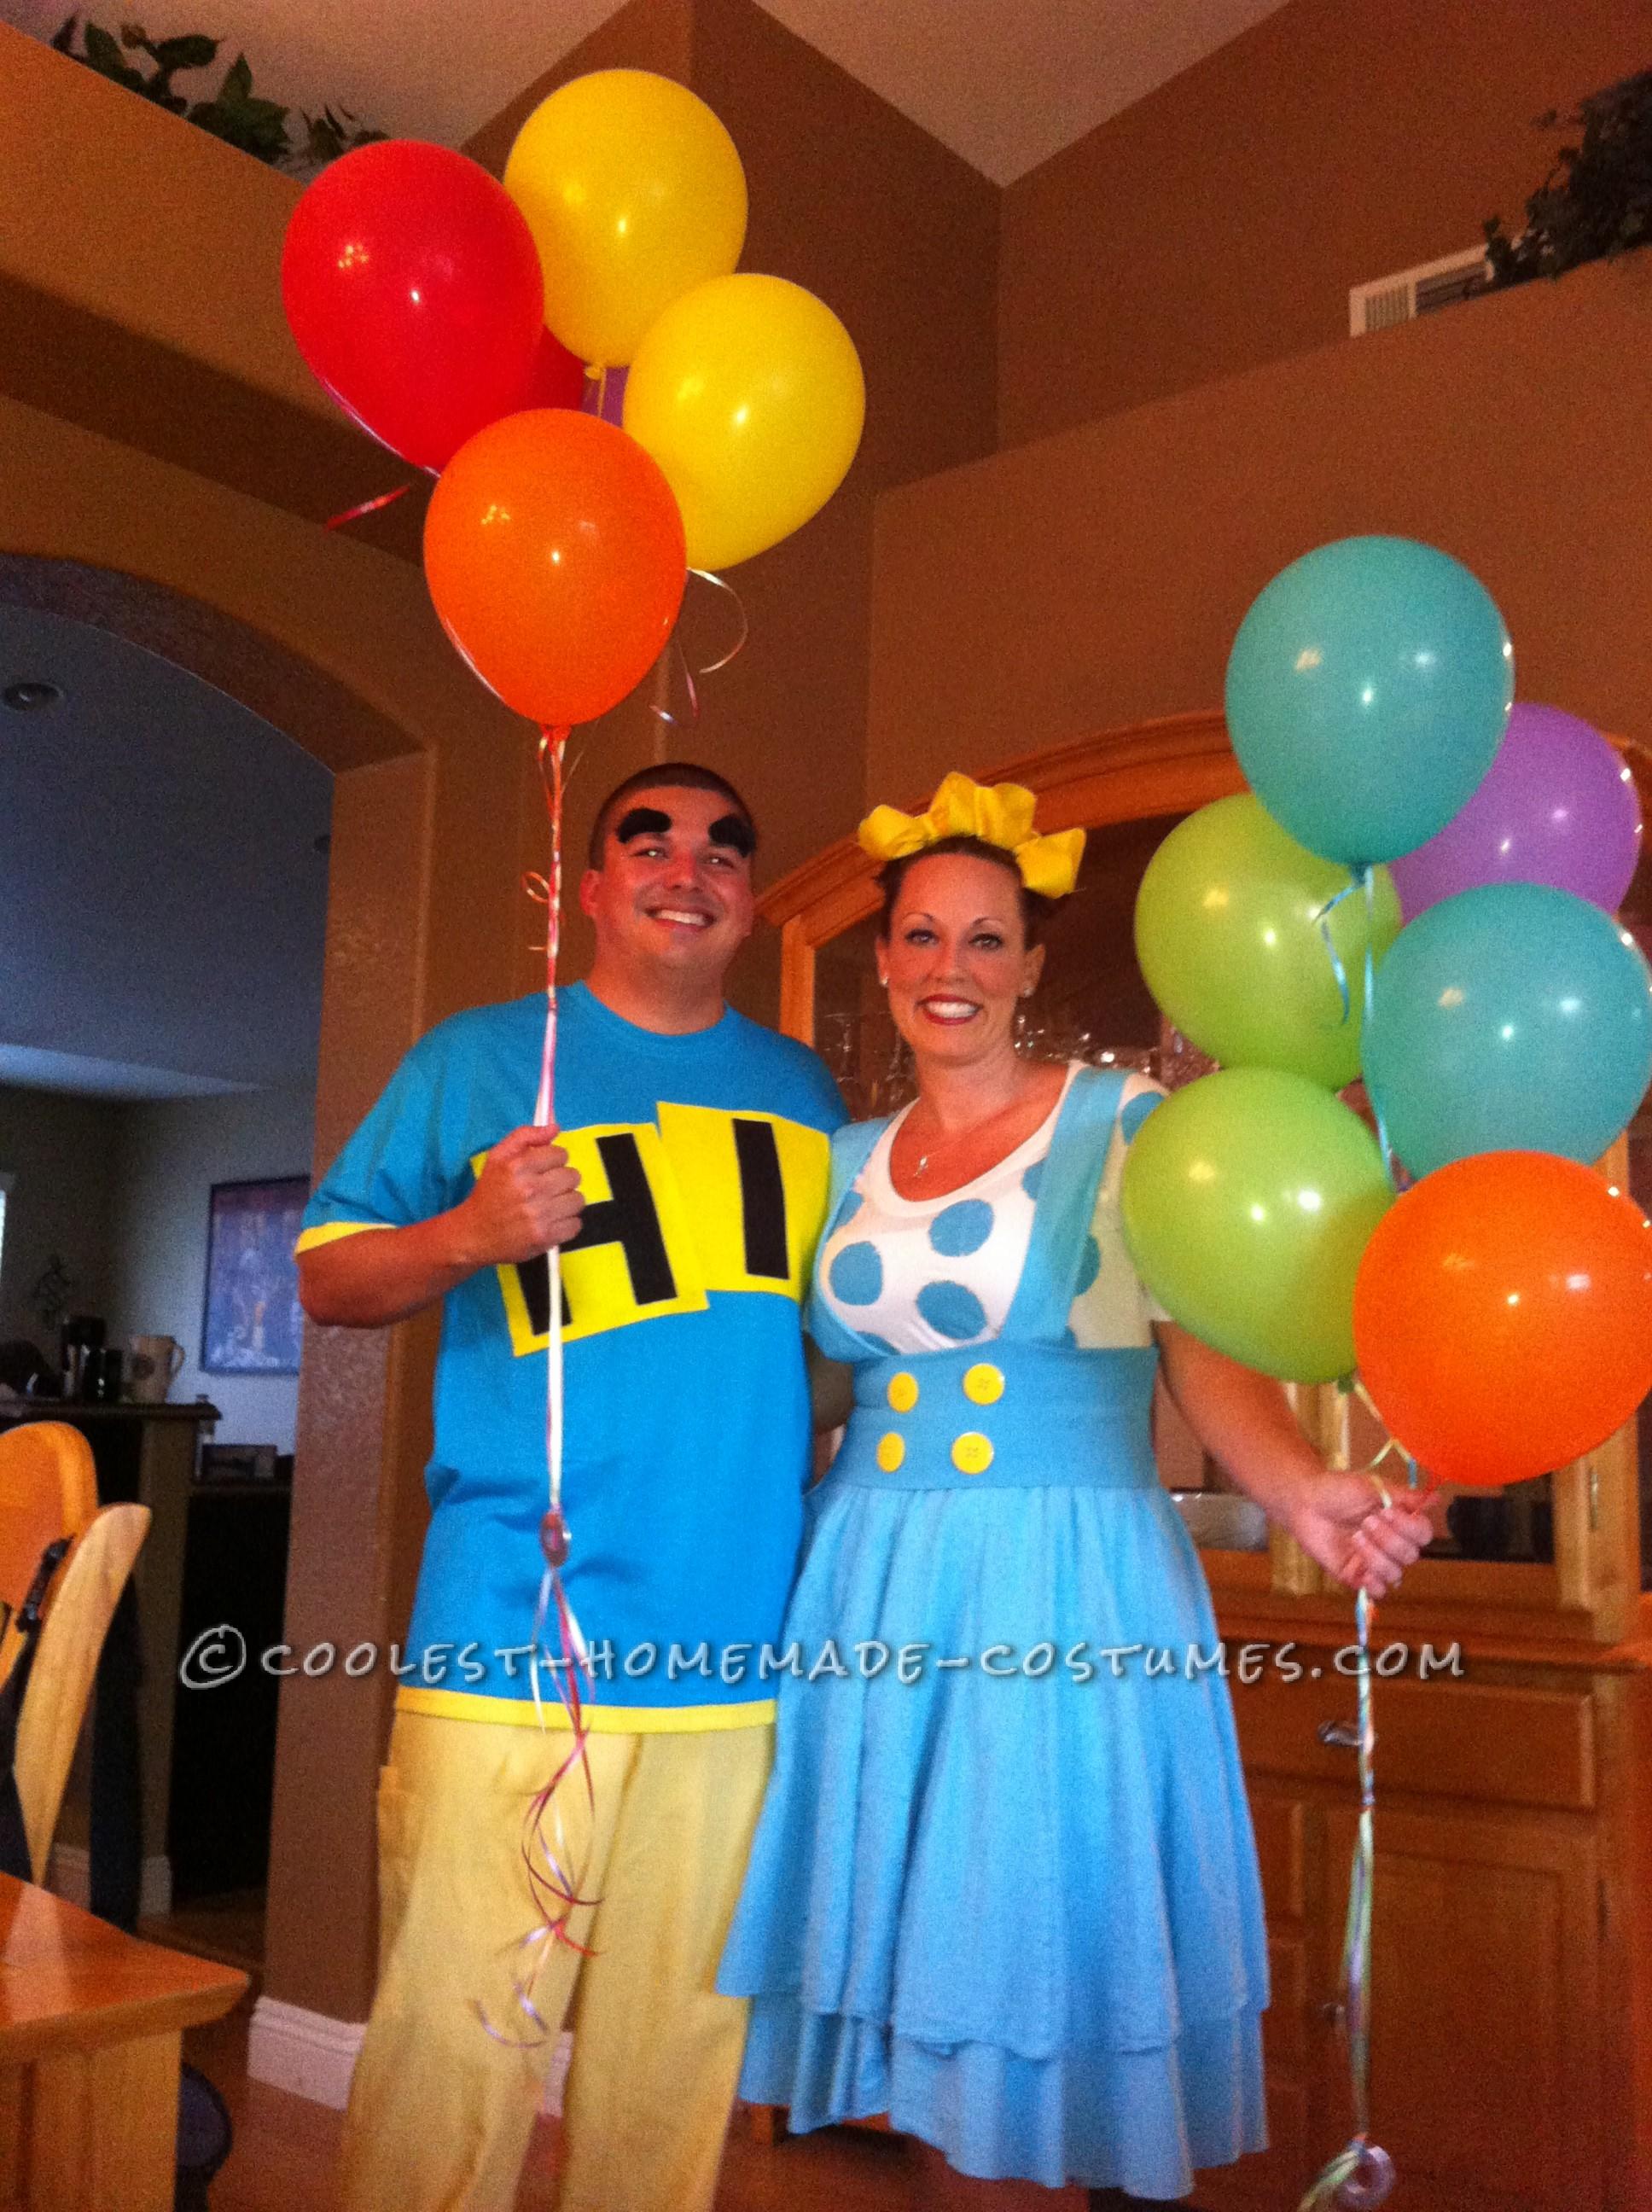 Original Hanging With Friends Homemade Couple Costume